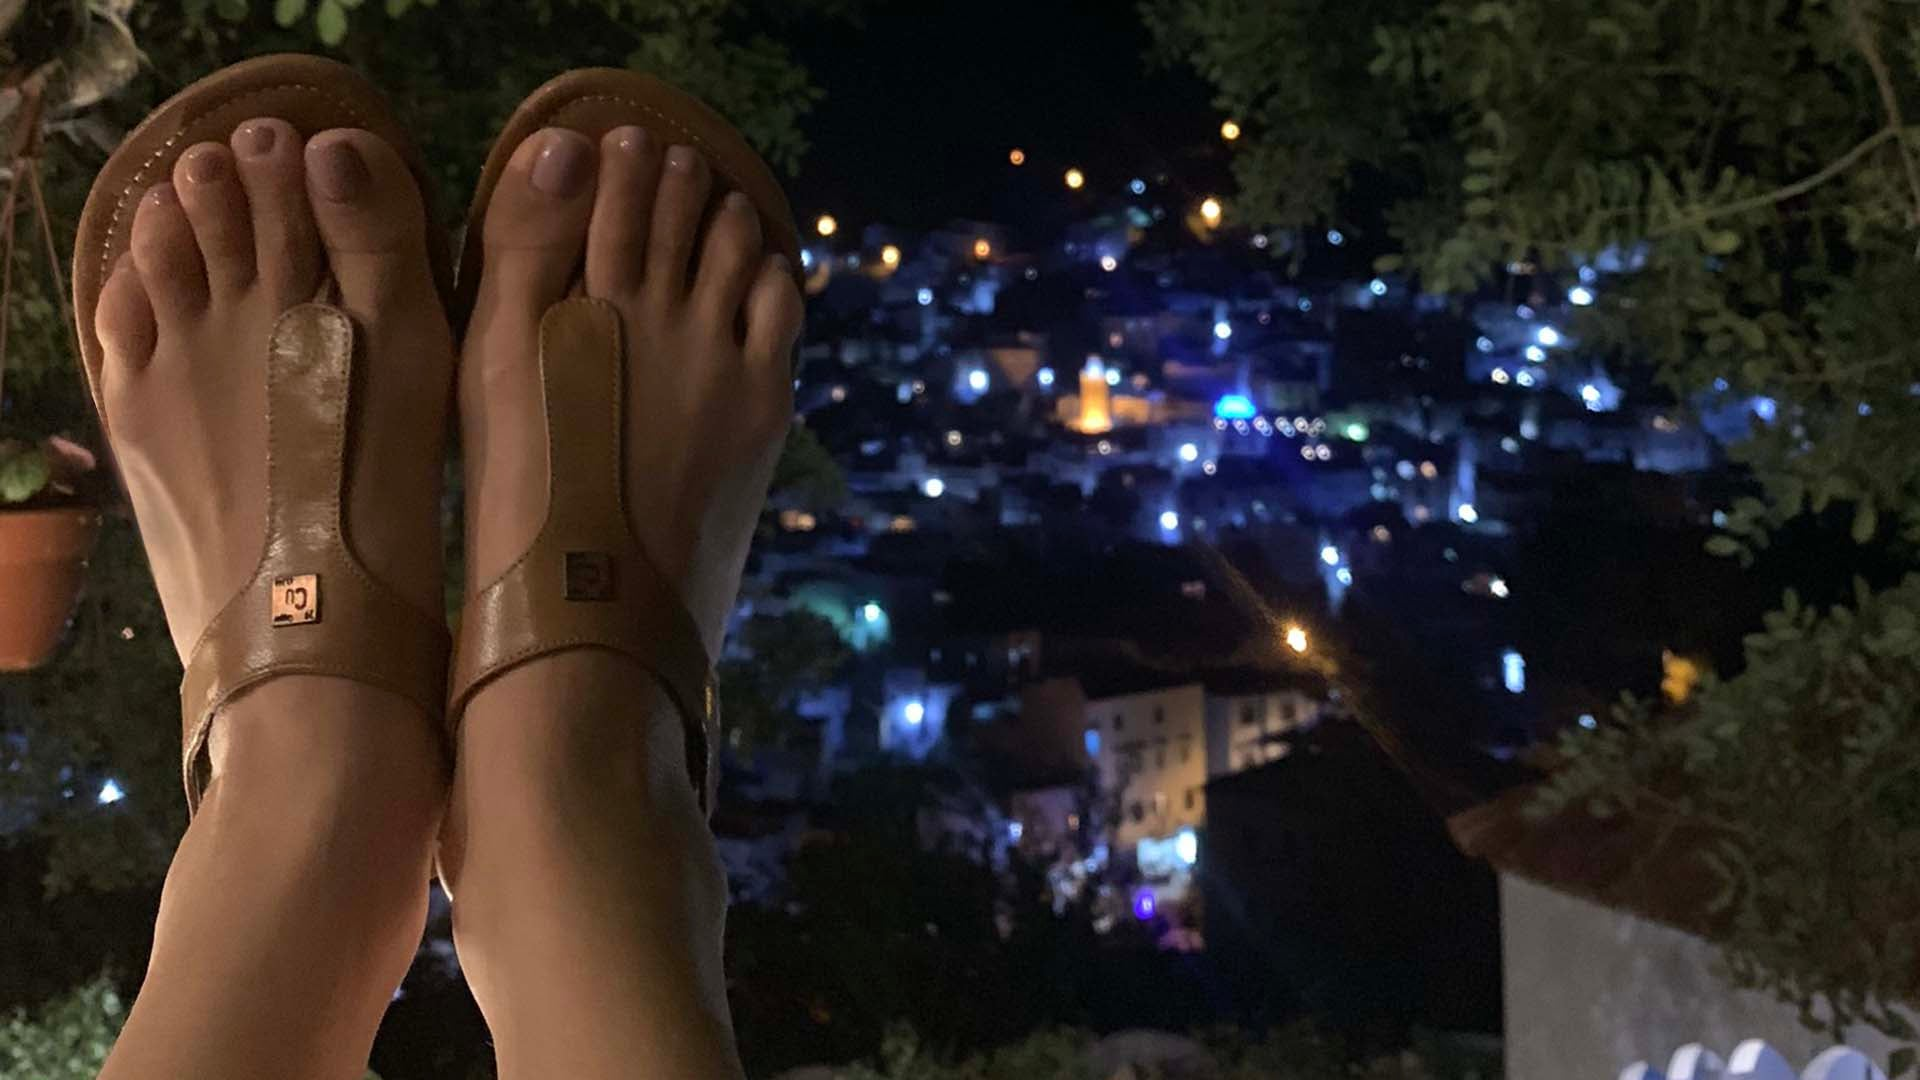 Tan colored grounding sandals up in the air with blue street lights in the distance